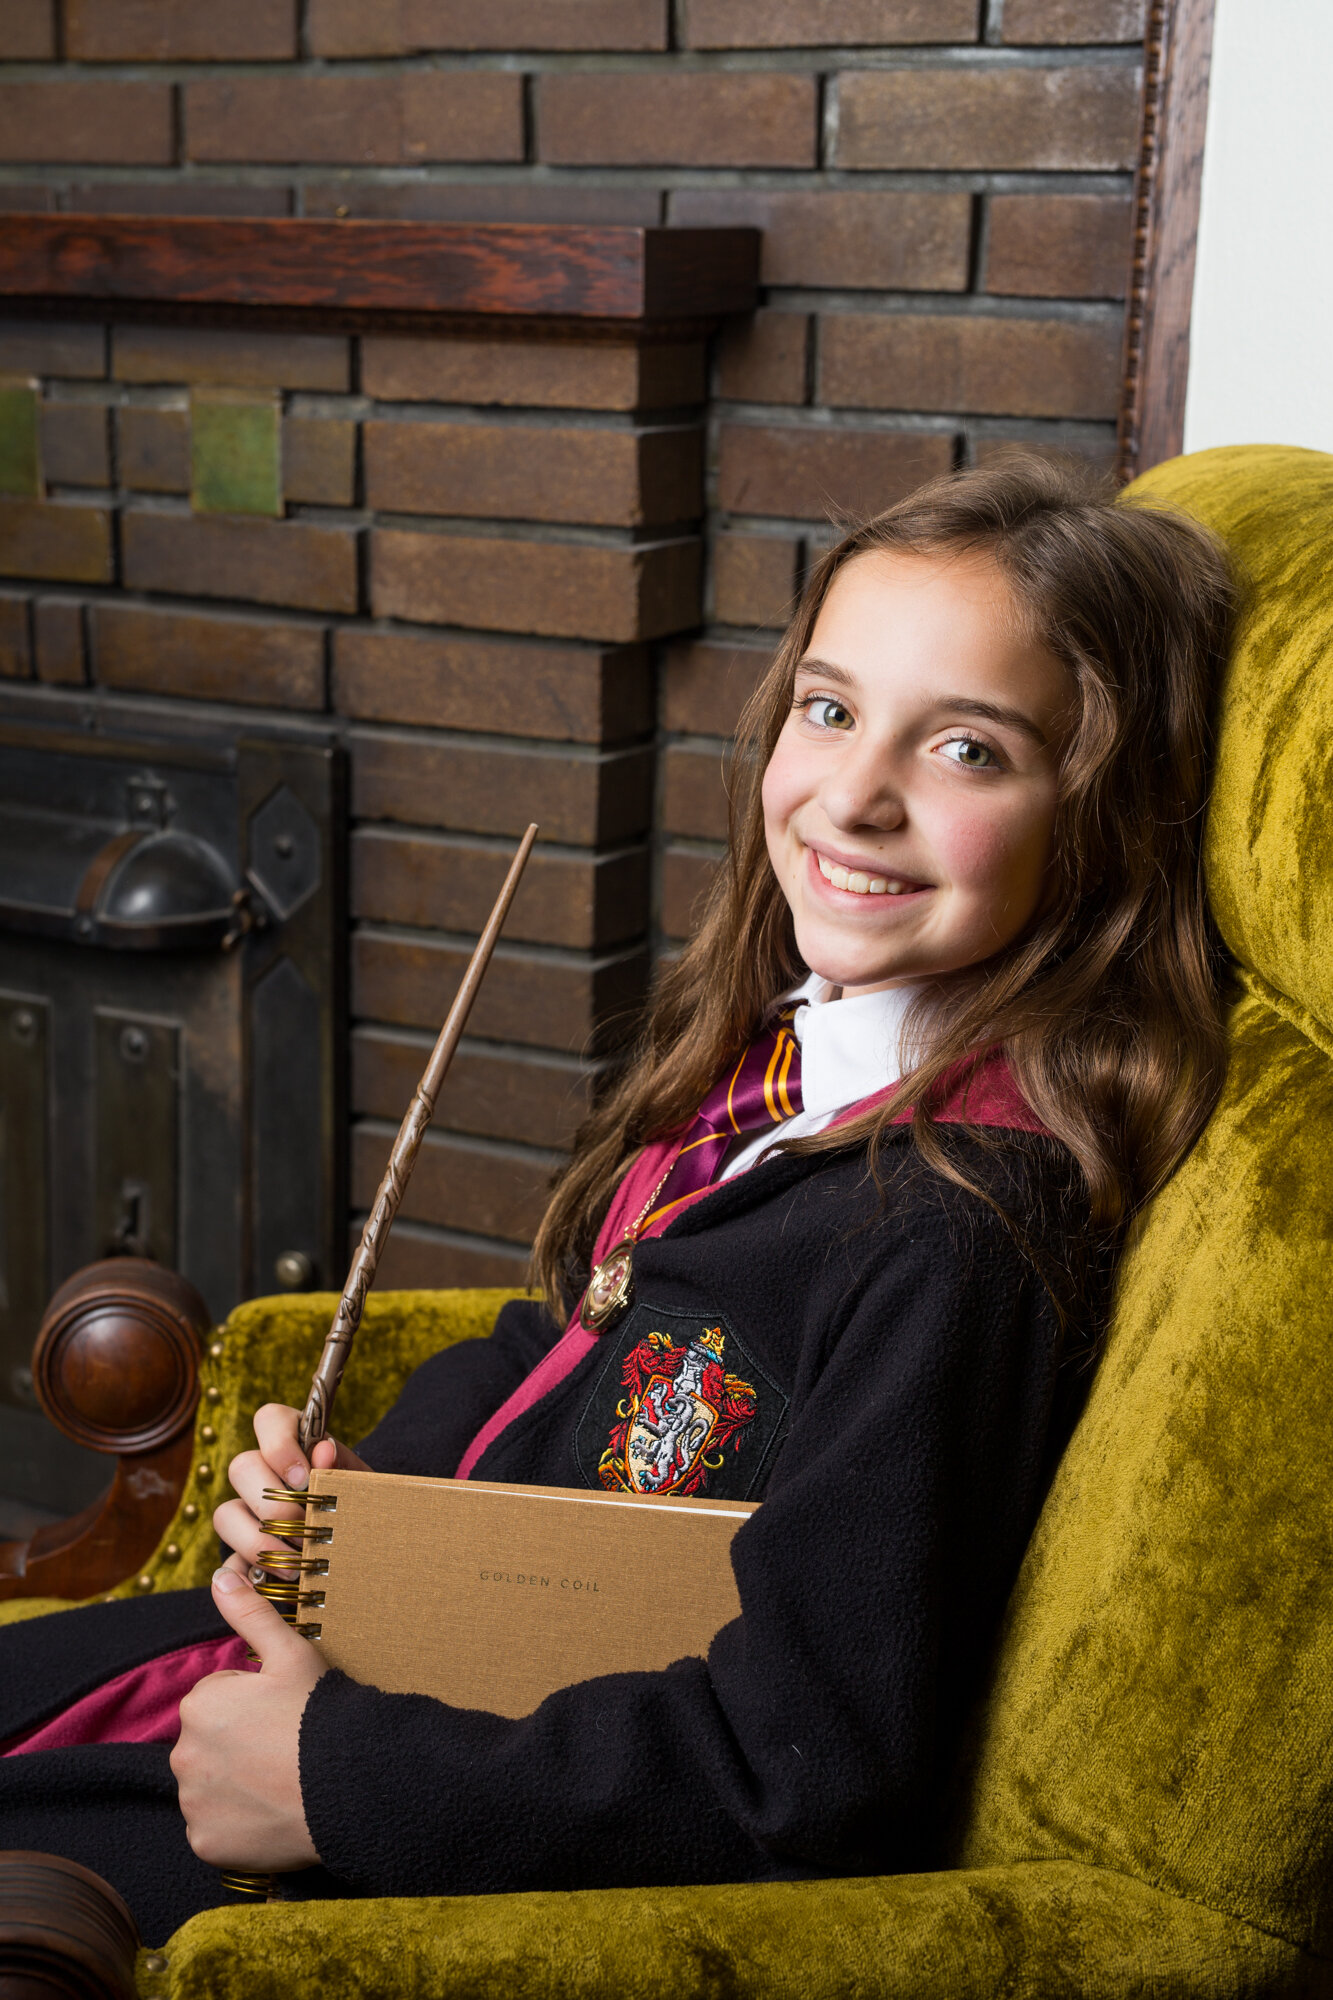 Hermione with her Golden Coil Planner